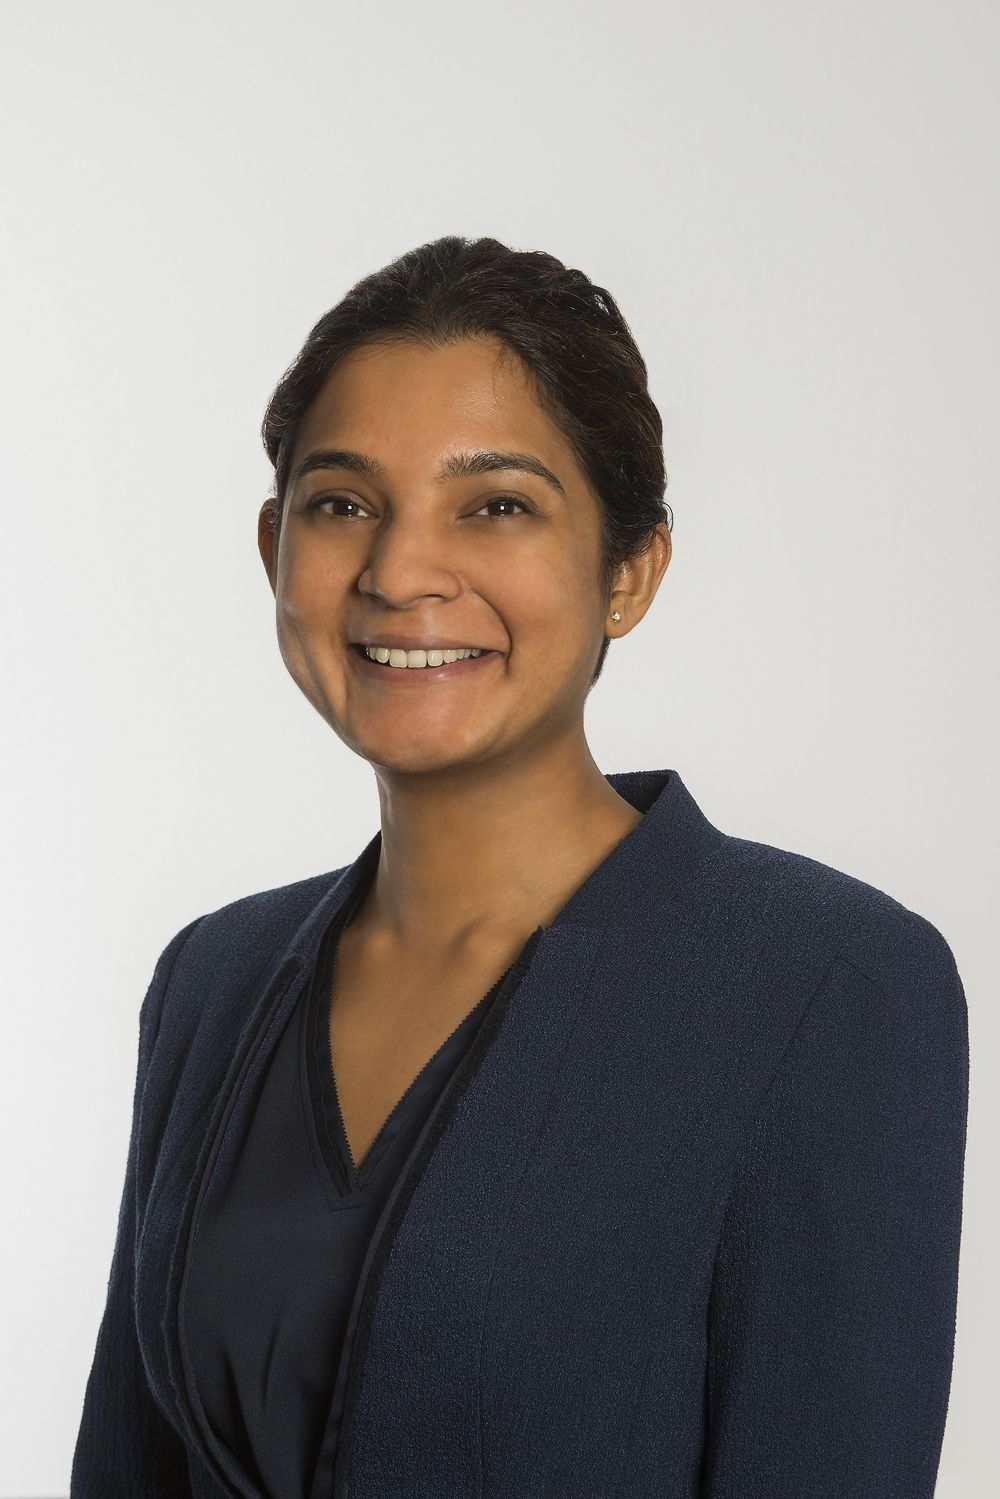 EDGEPROP SINGAPORE-  In her new role at Radisson Hotel Group, Menon will be in charge of all legal matters and corporate governance issues in the region. (Picture: Radisson Hotel Group) - EDGEPROP SINGAPORE